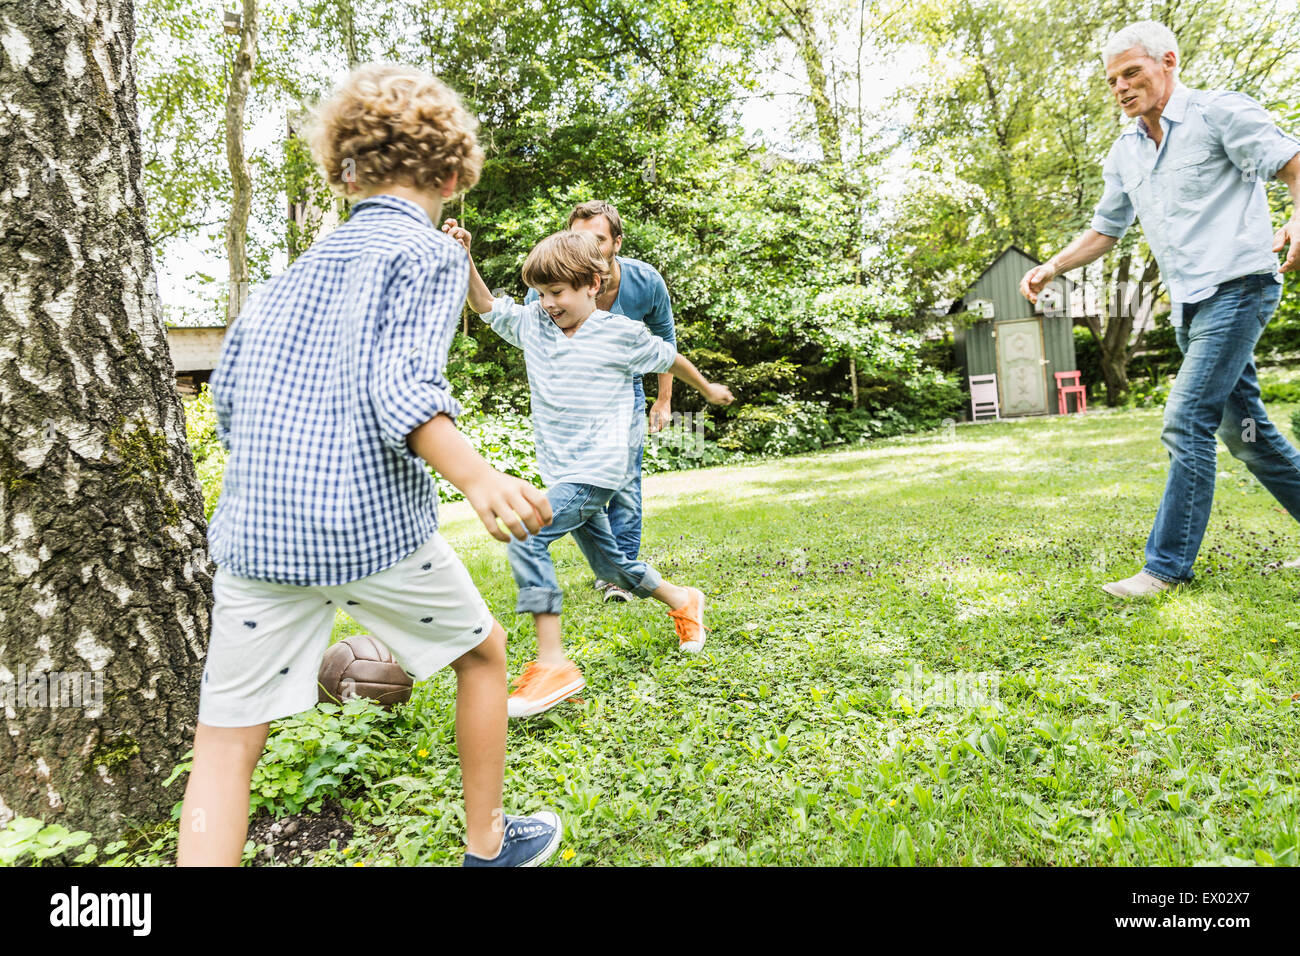 Mid adult man and father playing garden soccer with sons - Stock Image